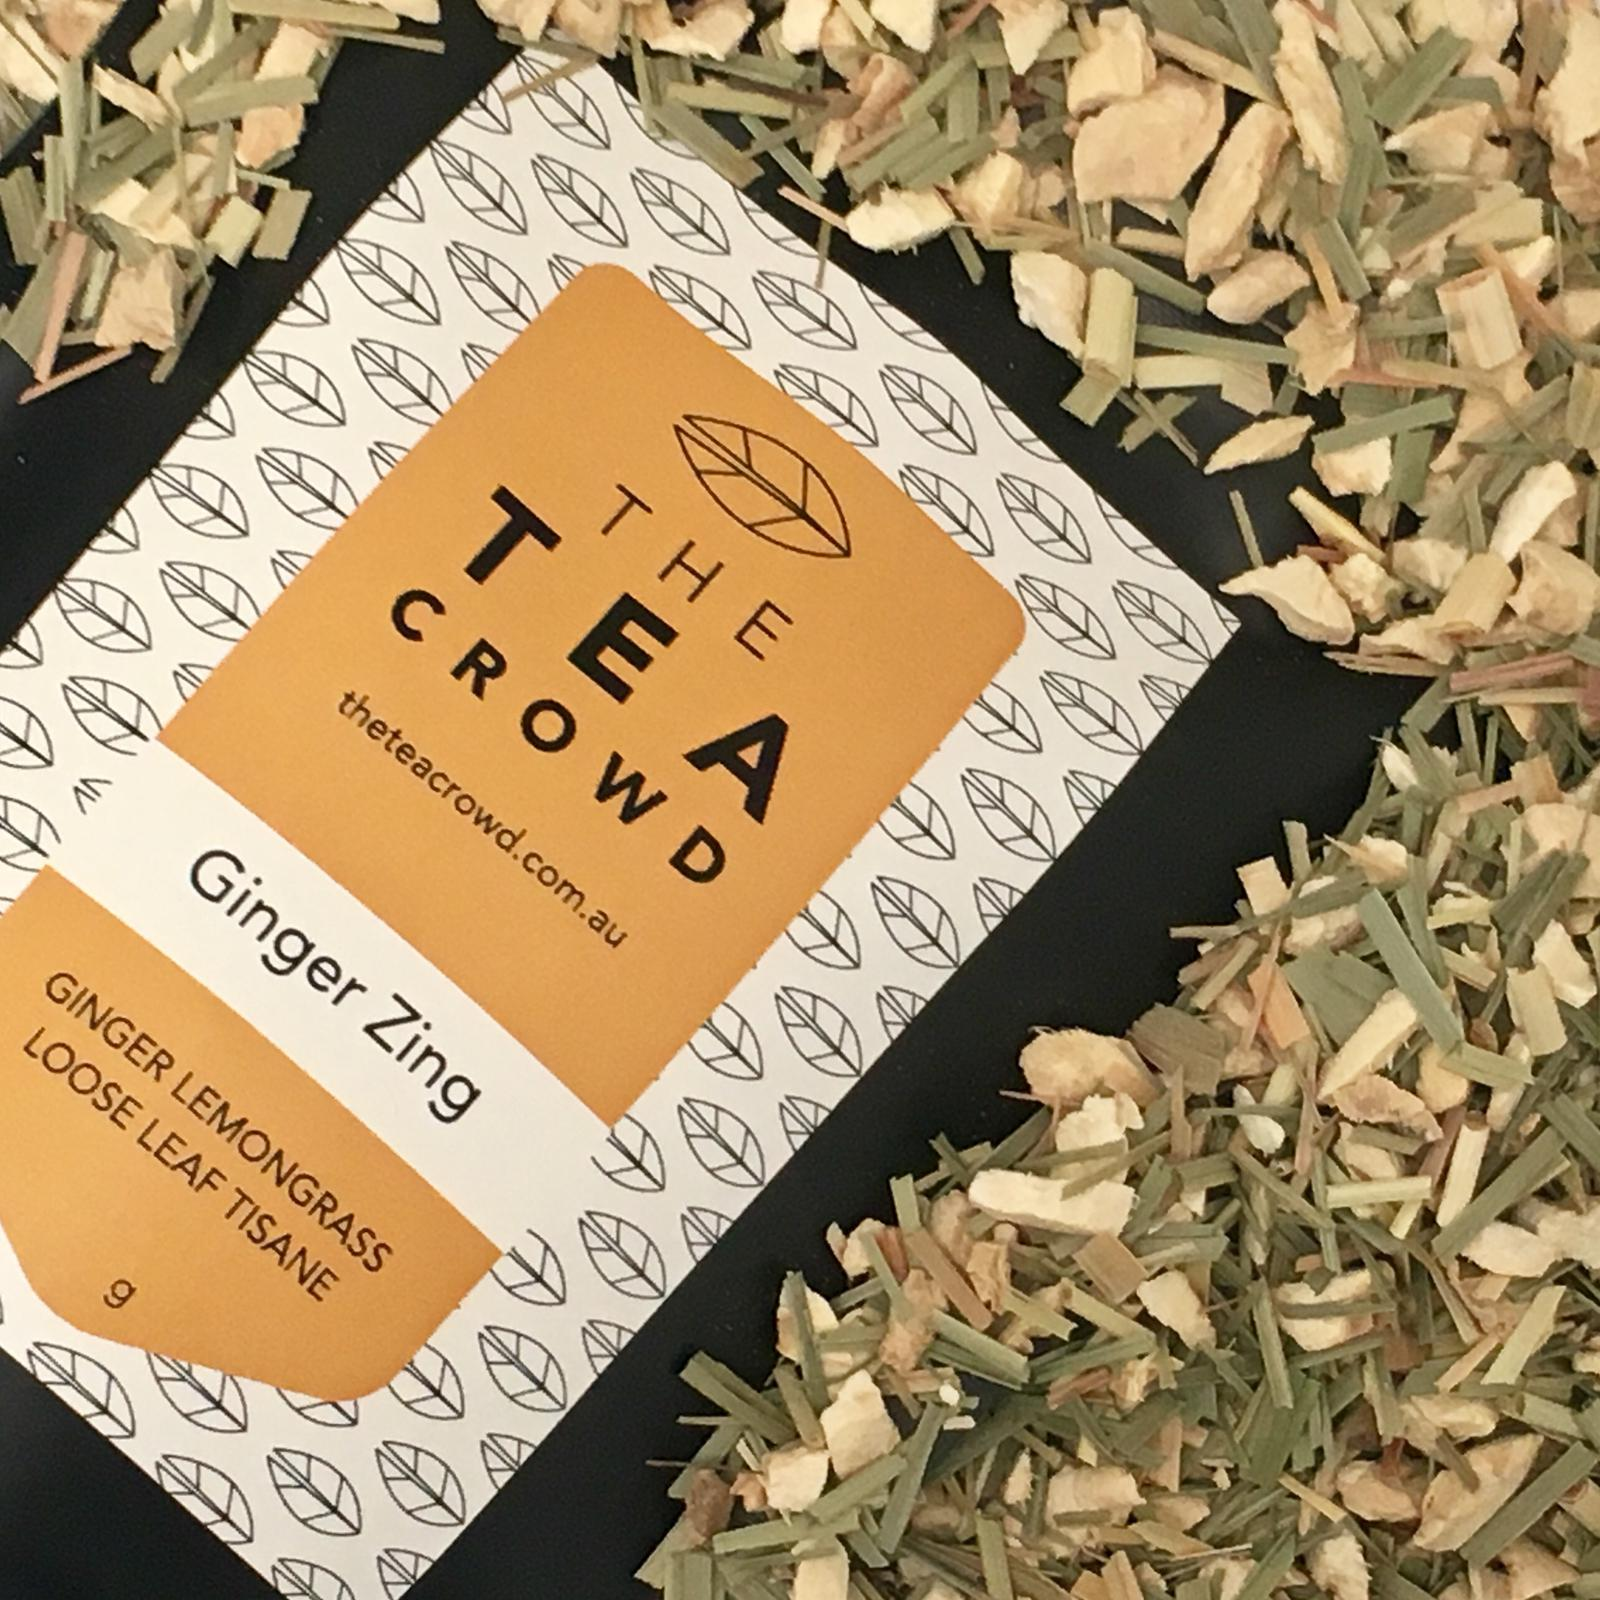 The Tea Crowd - Ginger Zing